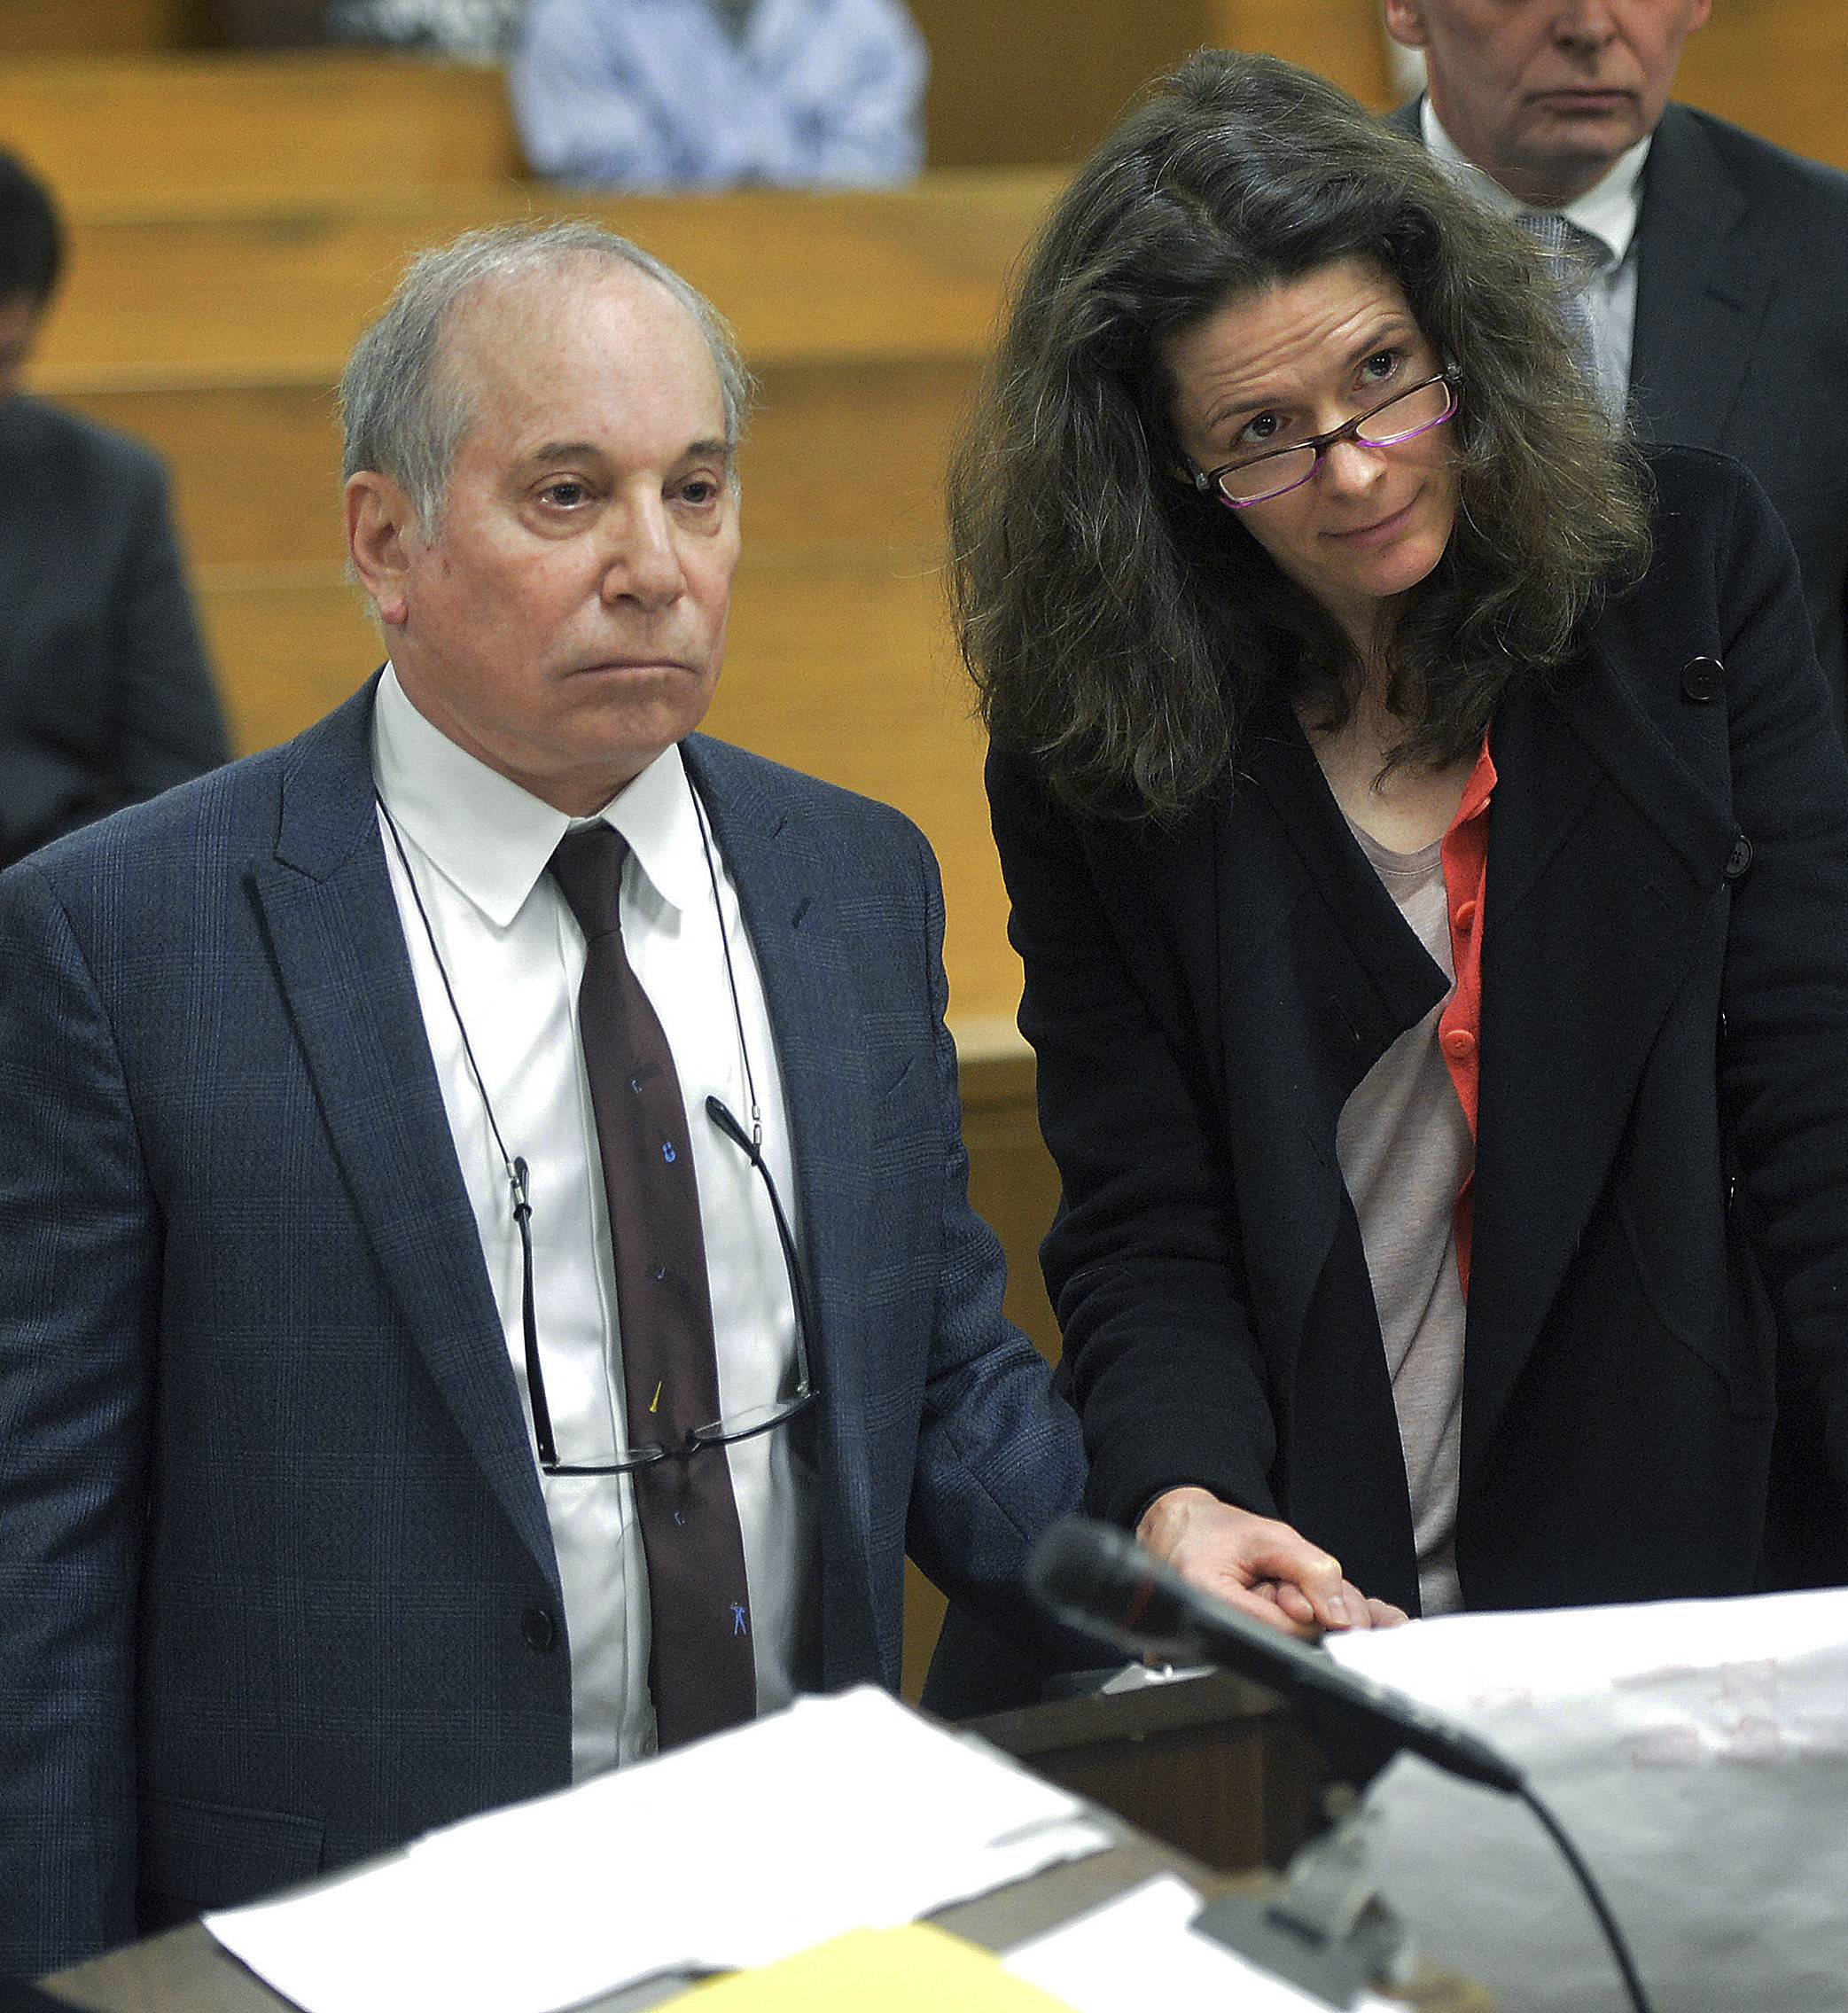 Singer Paul Simon holds hands with his wife, Edie Brickell, at a hearing in Norwalk Superior Court on Monday in Norwalk, Conn. The couple were arrested Saturday on disorderly conduct charges by officers investigating a family dispute at their home in New Canaan, Conn.